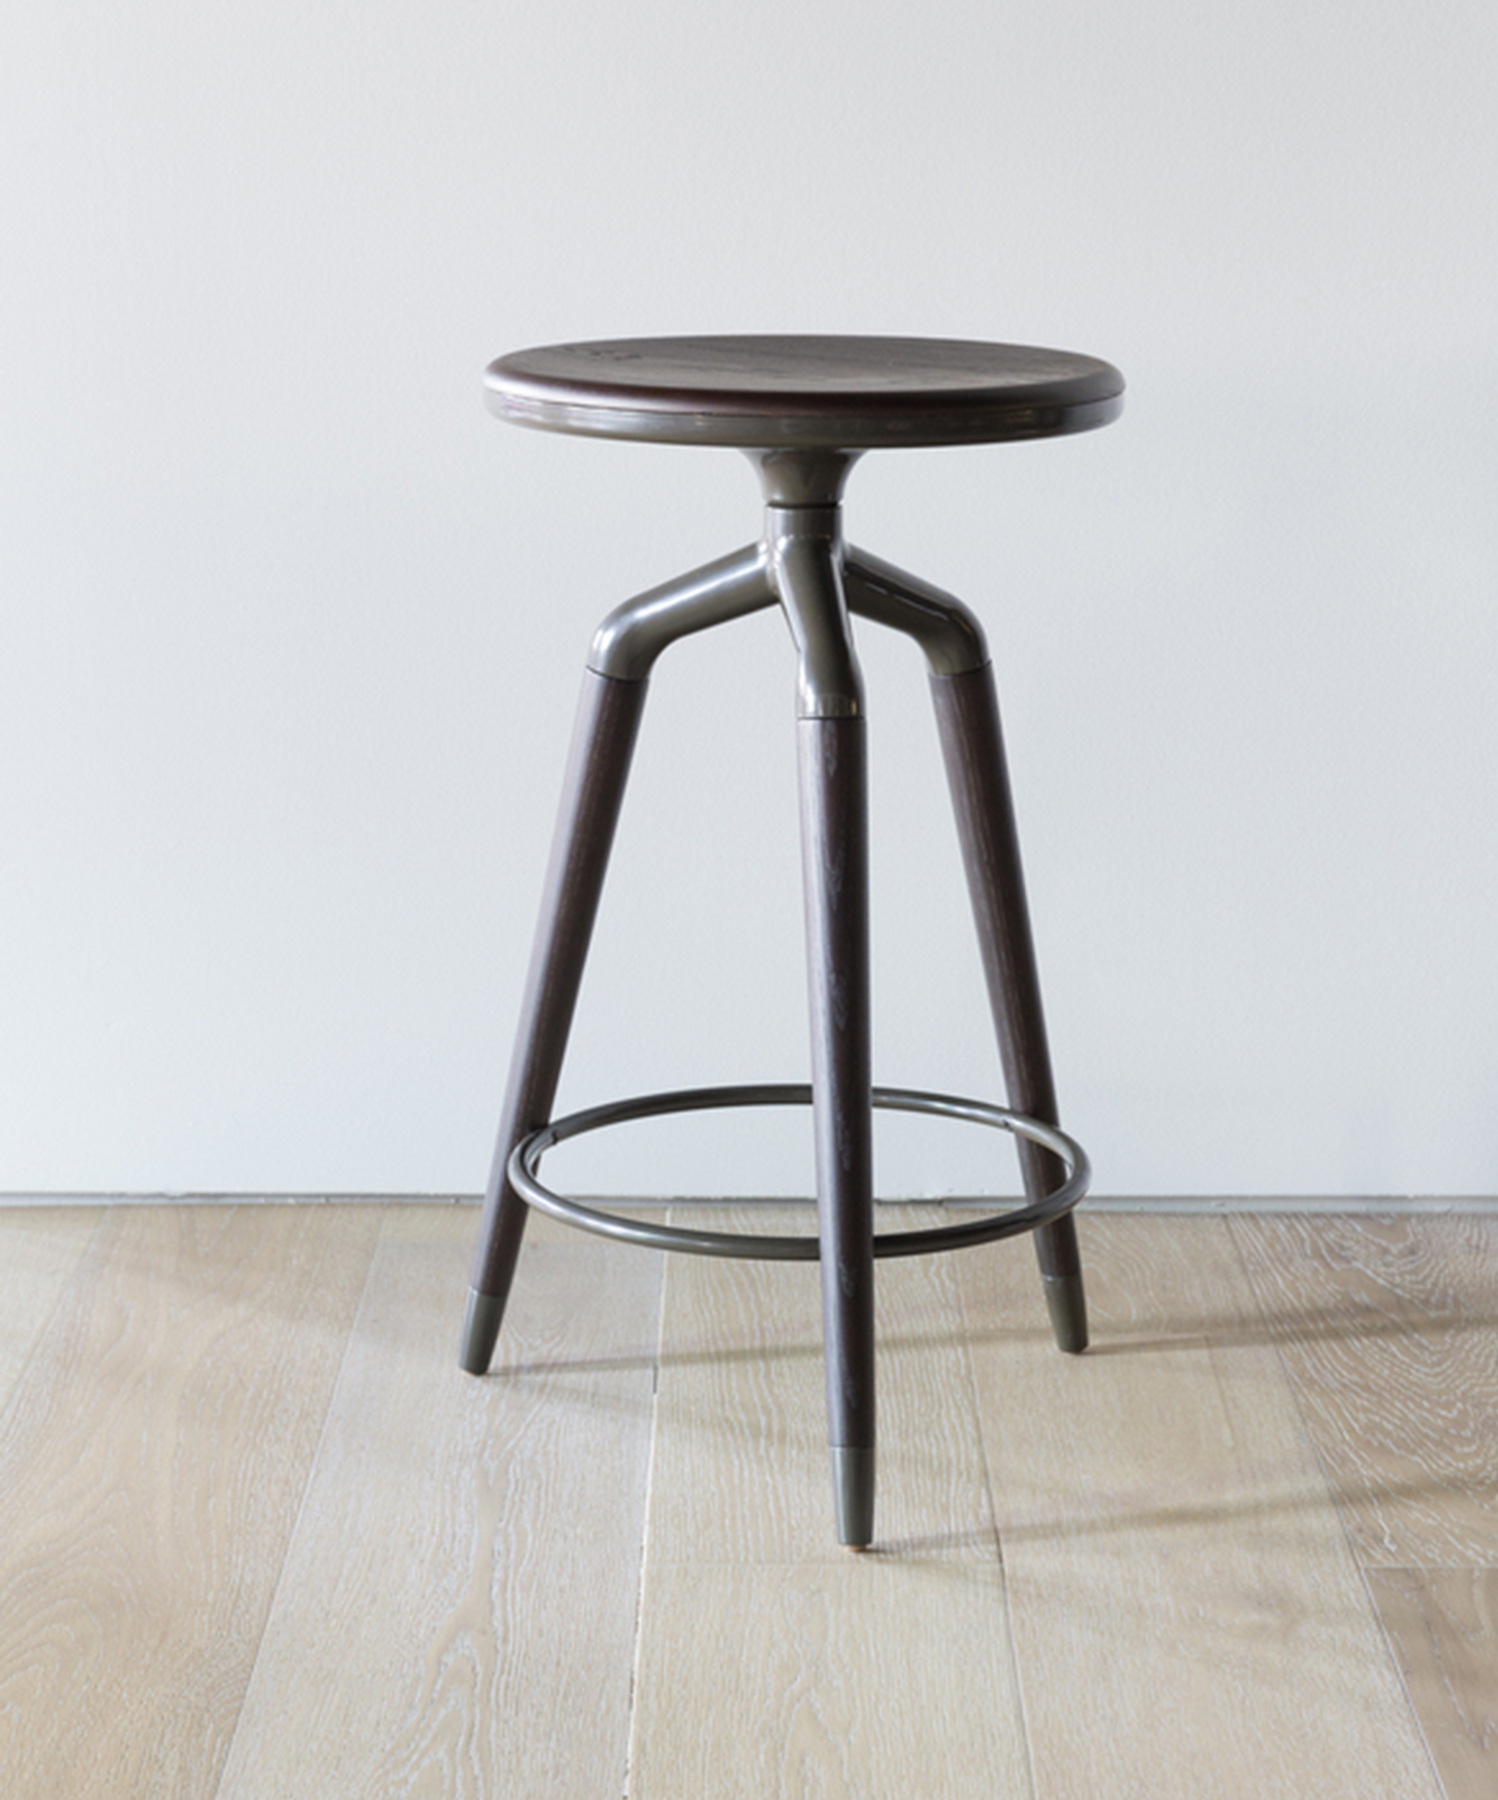 Enpointe has slender legs that extend down in slim points, as well as metal accents. The seat has a slight dip to it for added comfort.